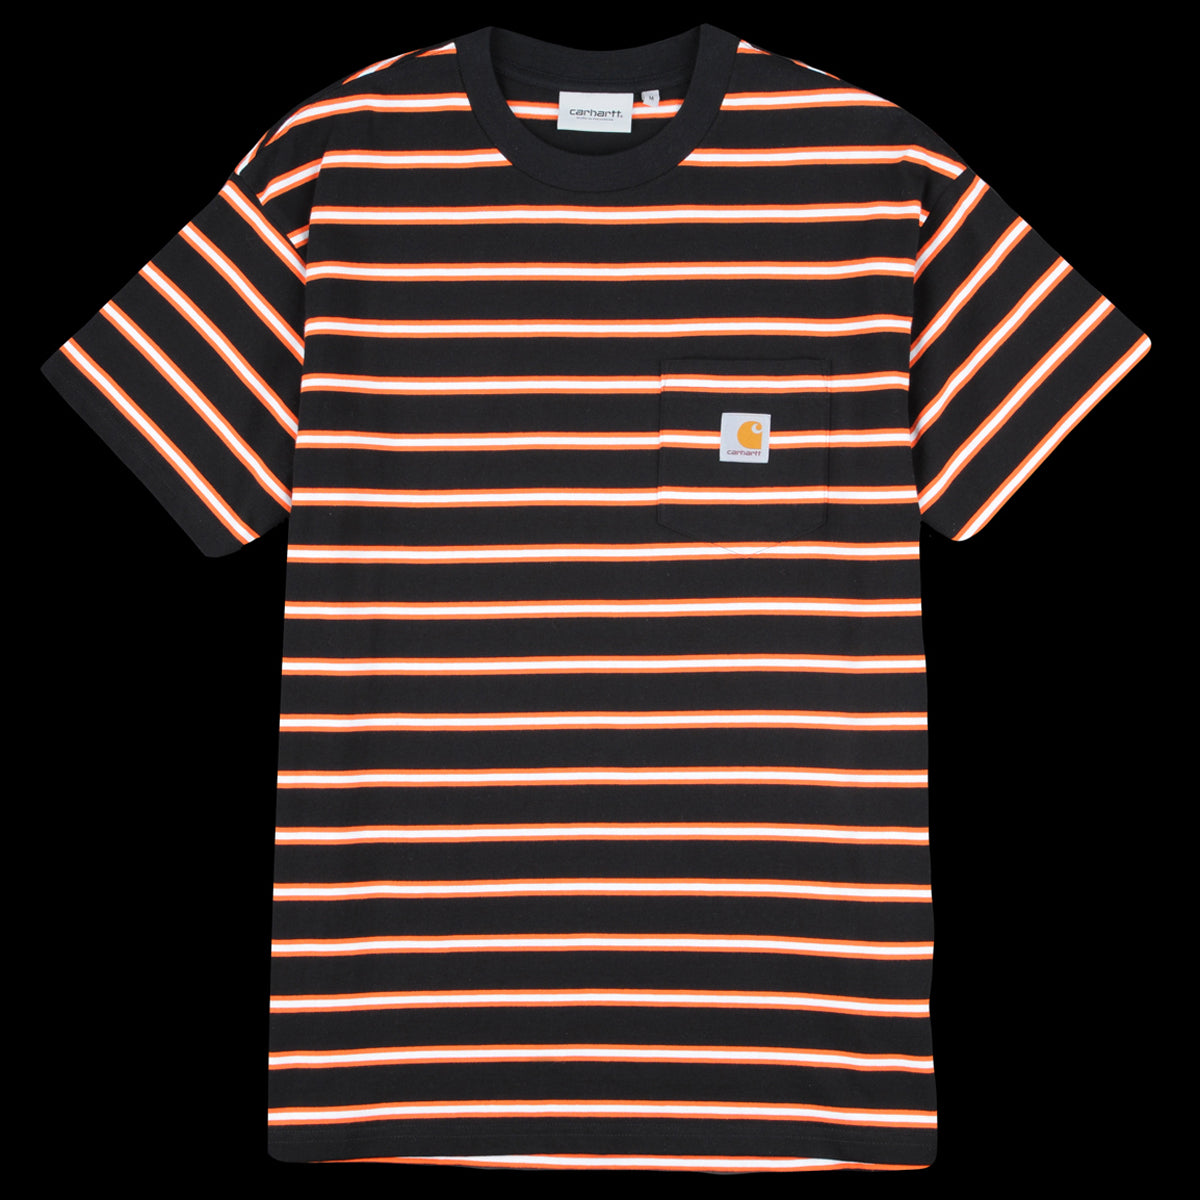 95b6ea8e Carhartt WIP - Houston Stripe Pocket Tee in Black - UNIONMADE